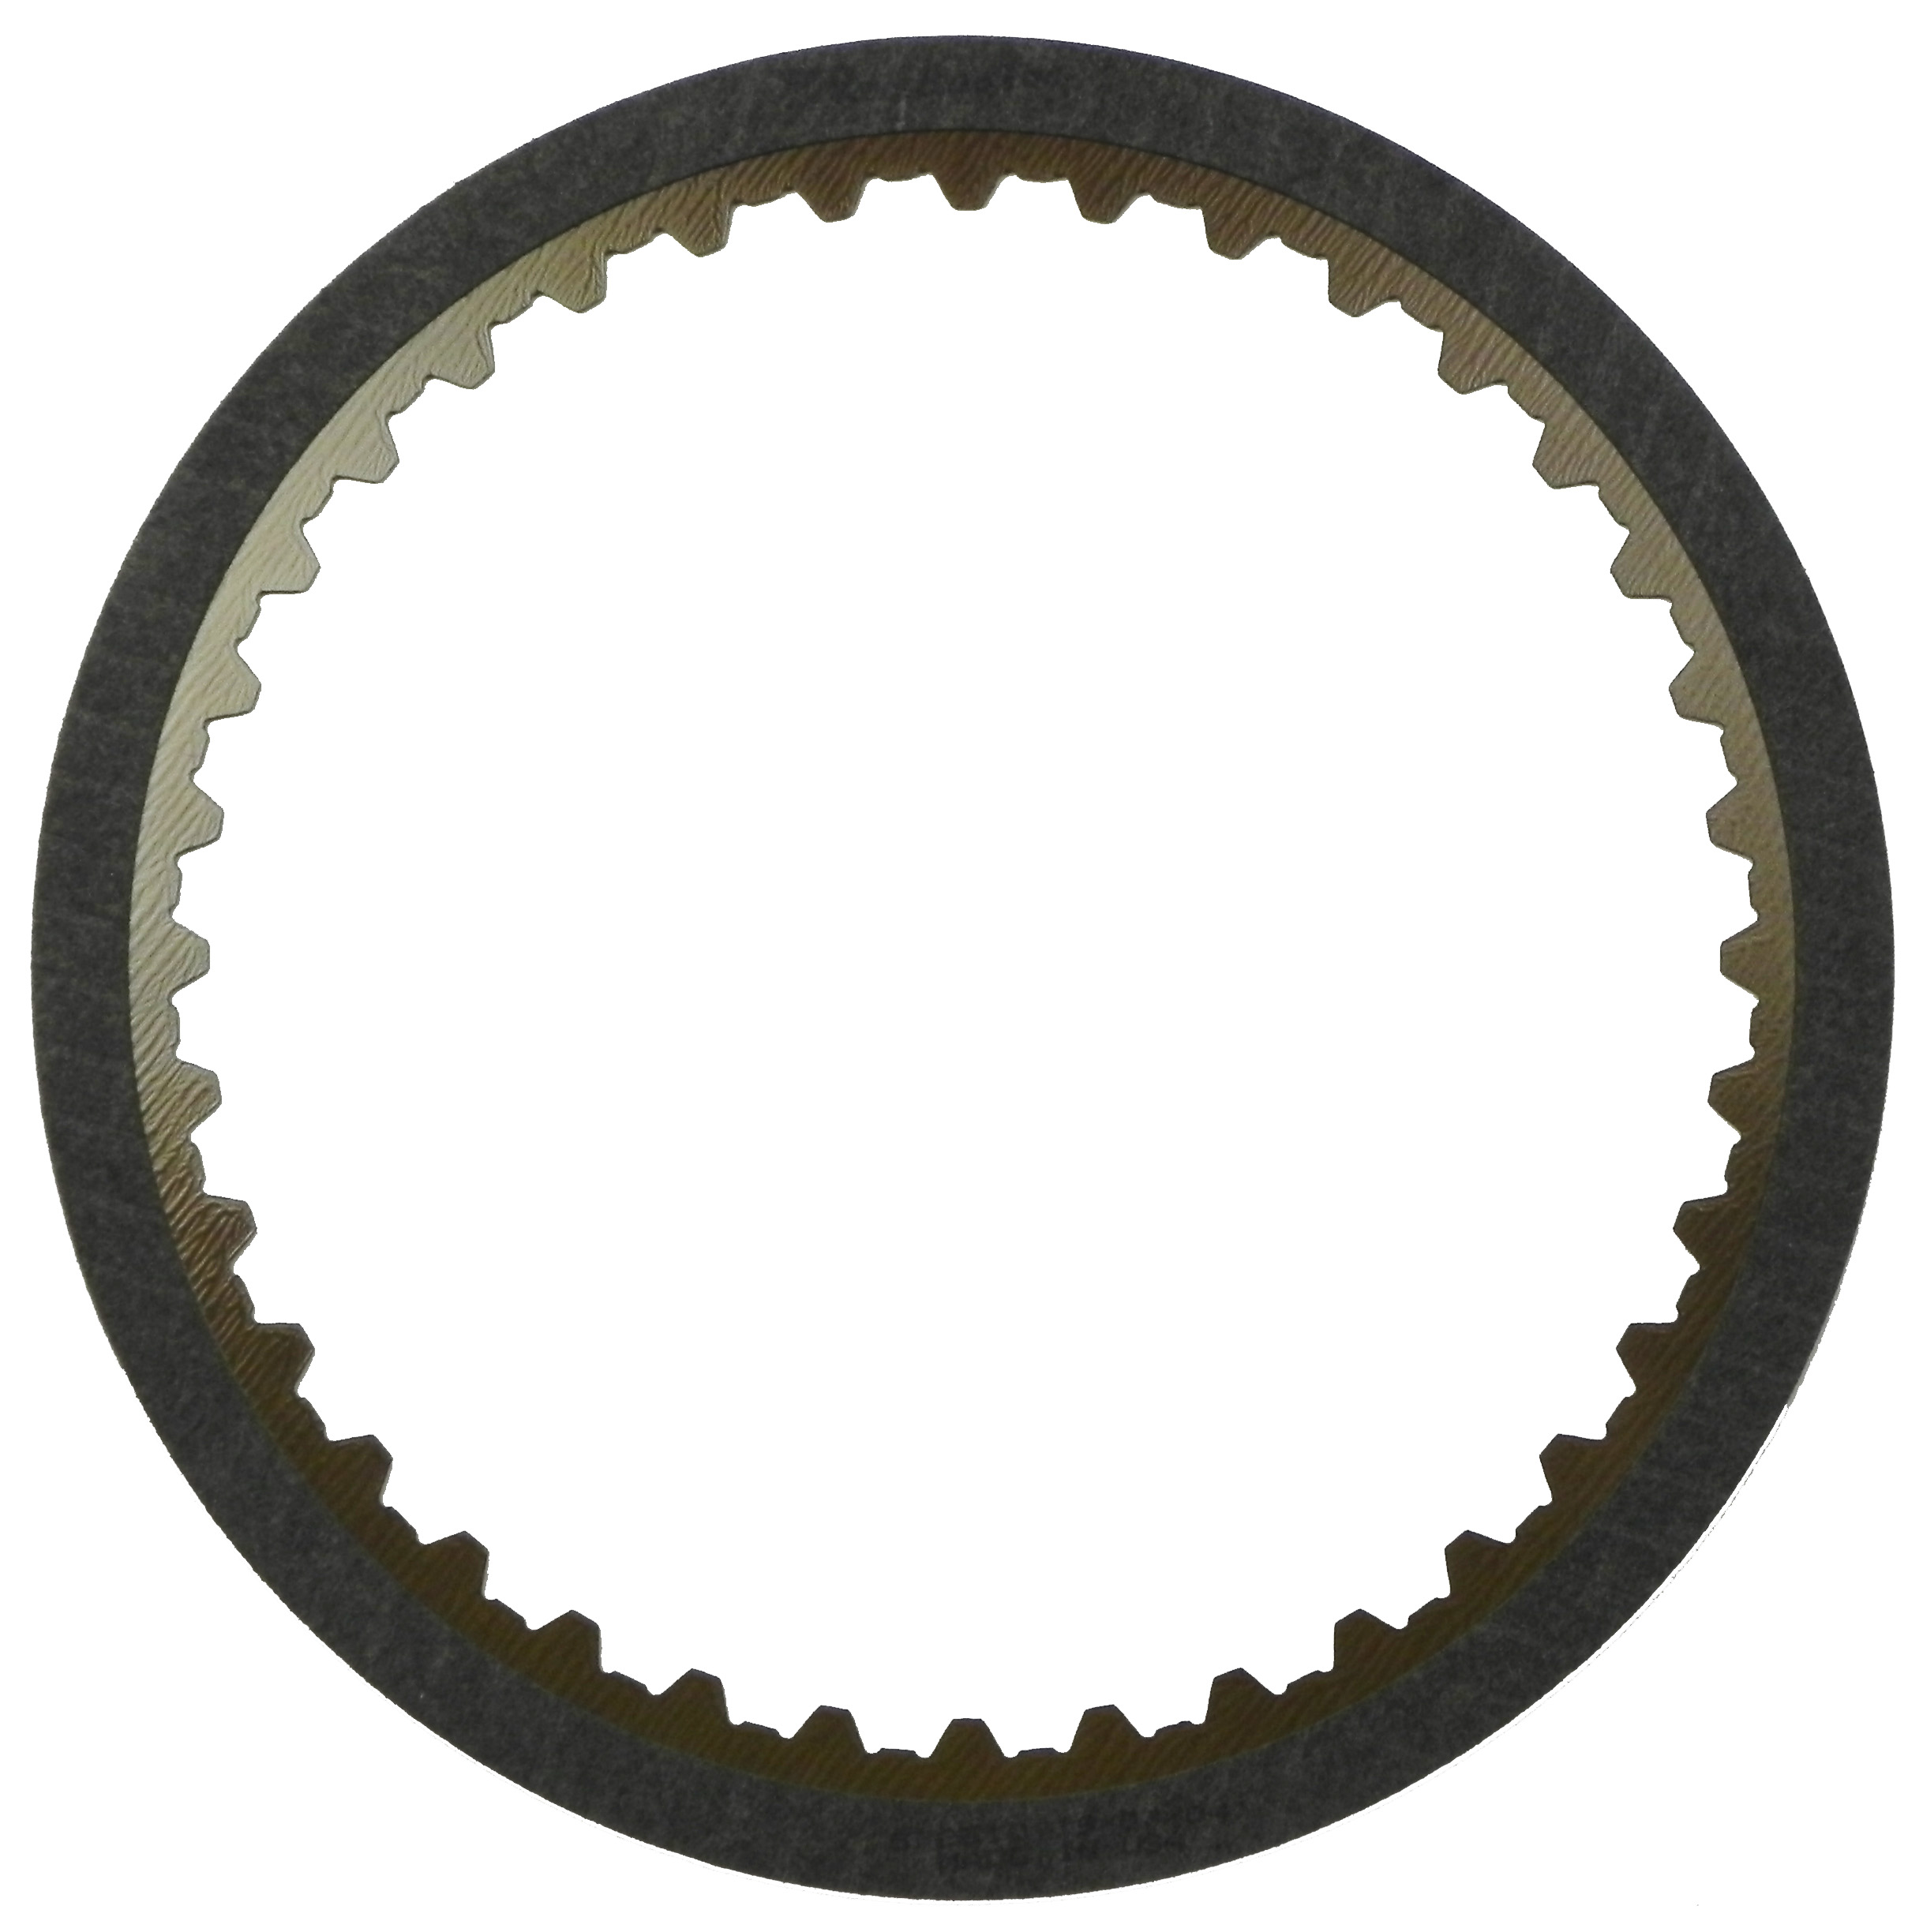 R572610 | 1996-ON Friction Clutch Plate High Energy K2 Clutch (Small ID) High Energy